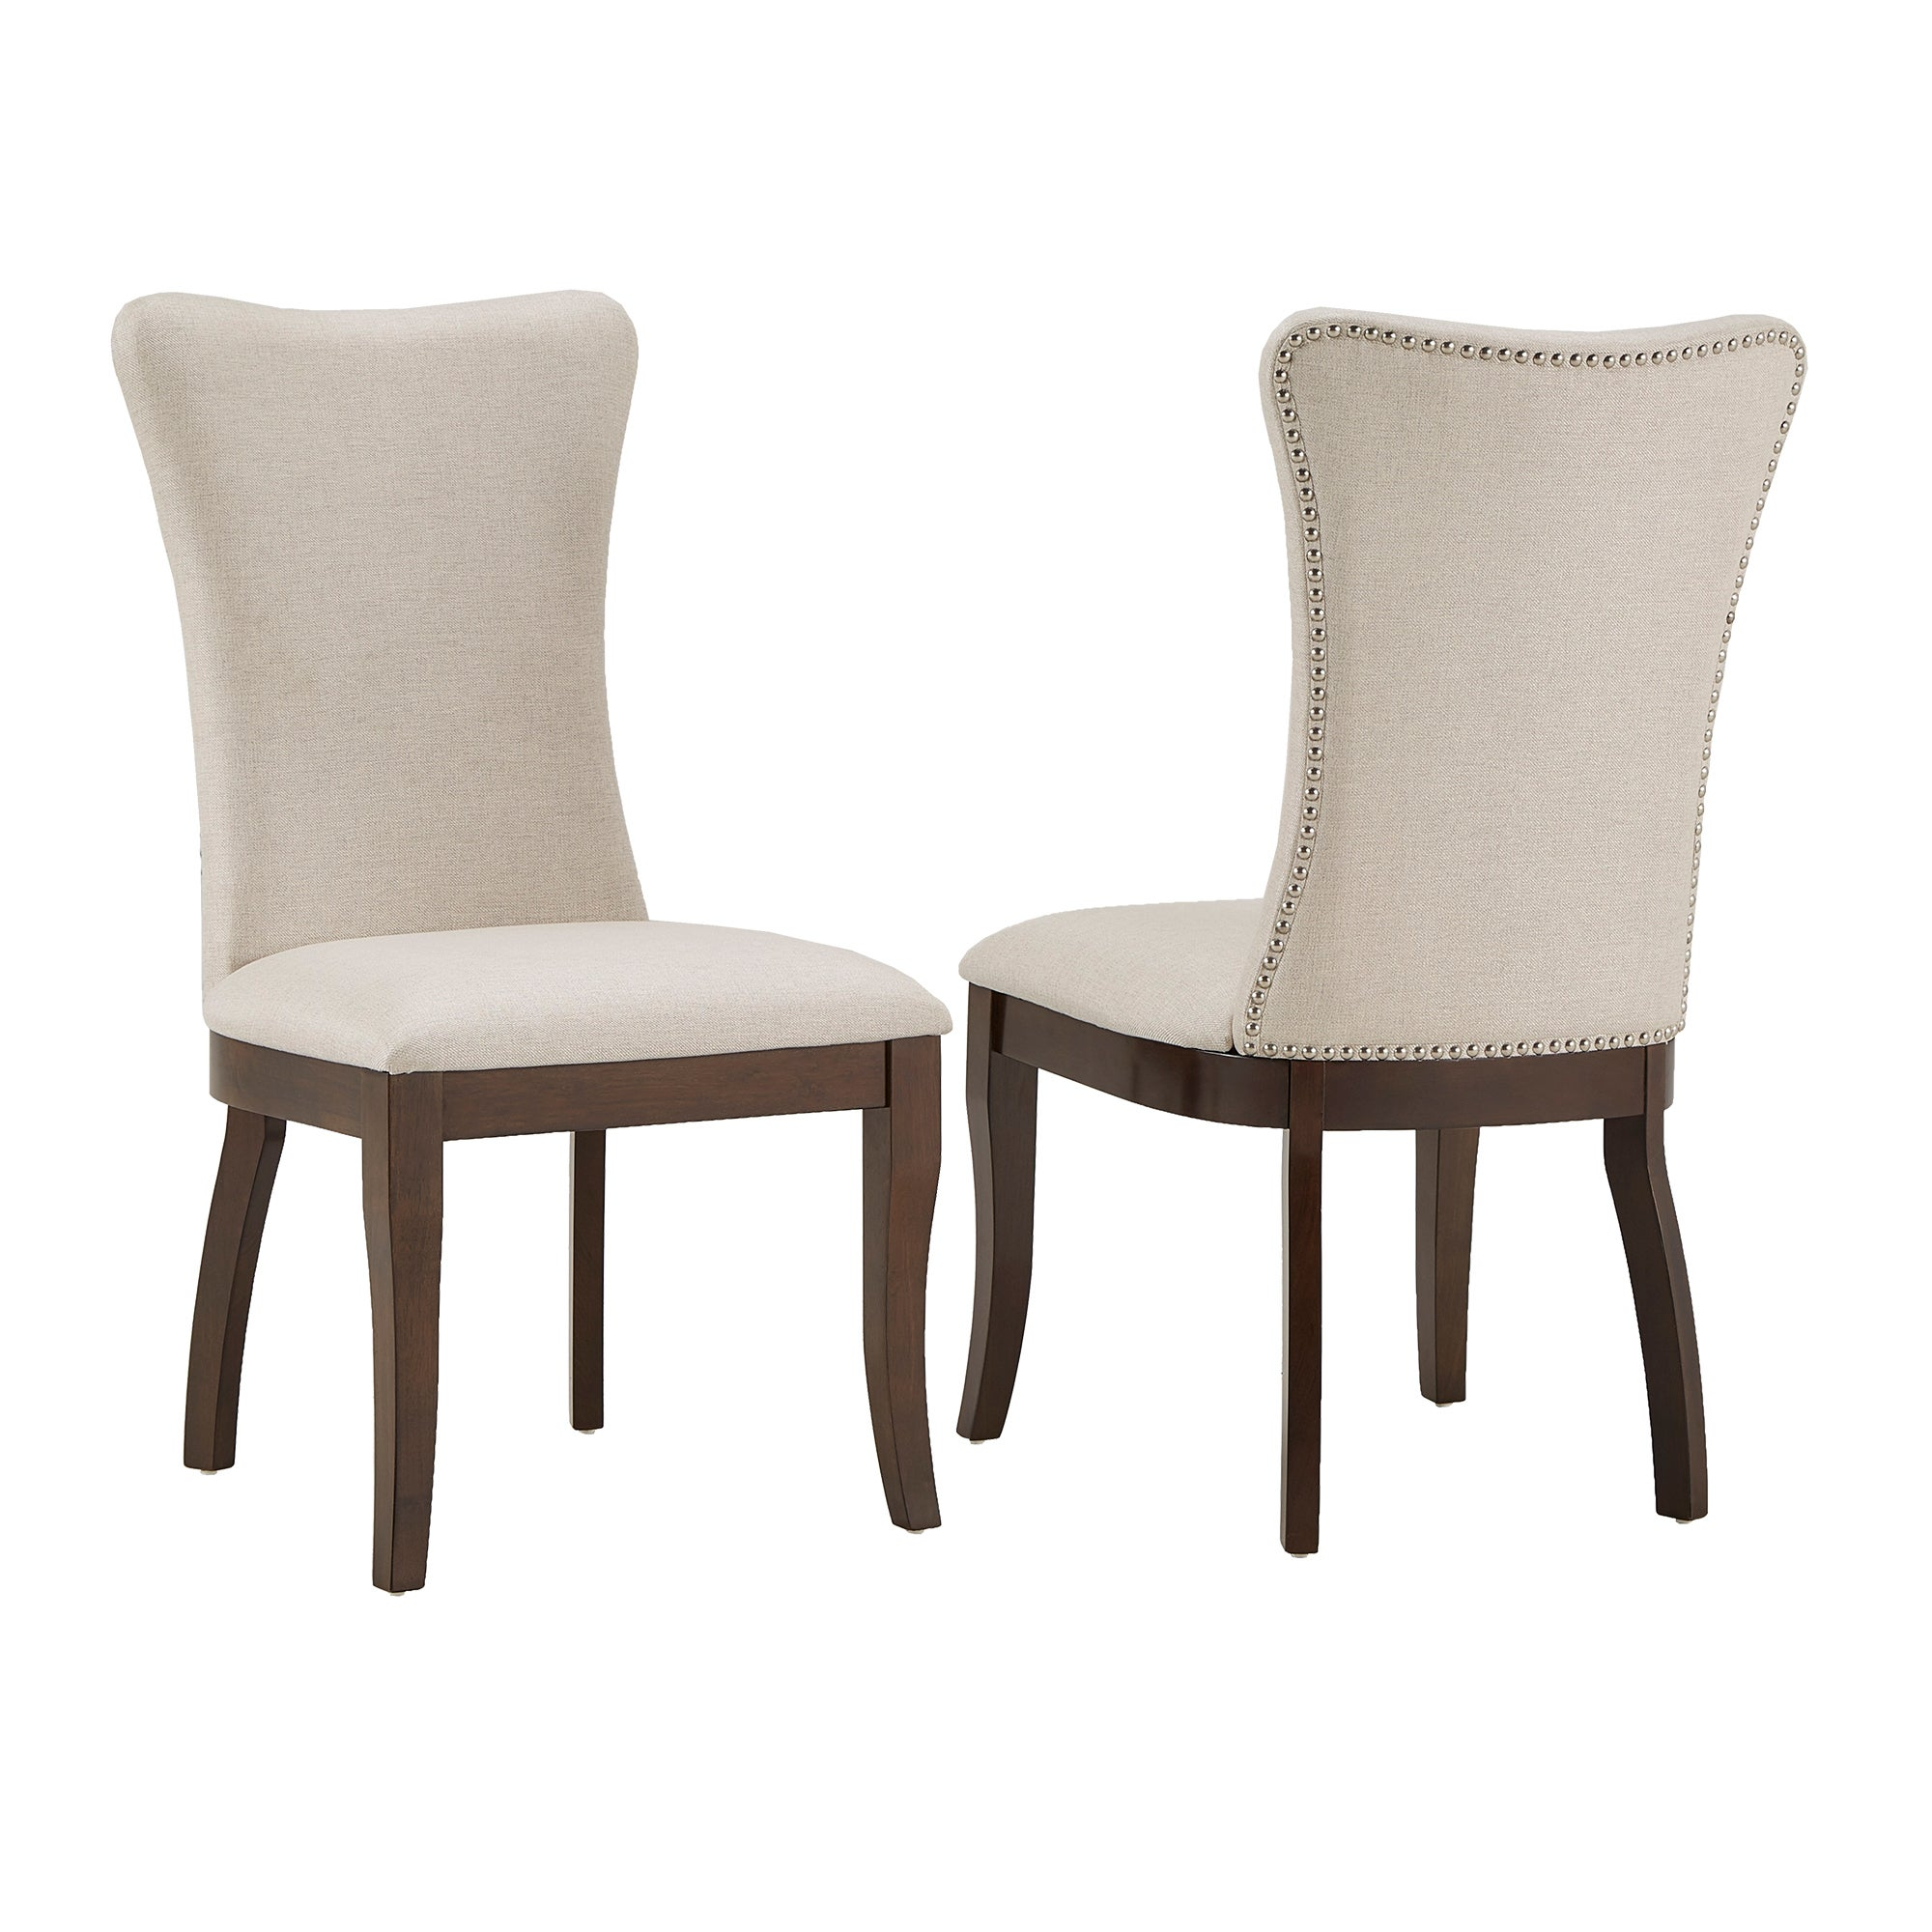 Willa Fabric Wingback Dining Chairs Set Of 2 By Inspire Q Classic Overstock 22160924